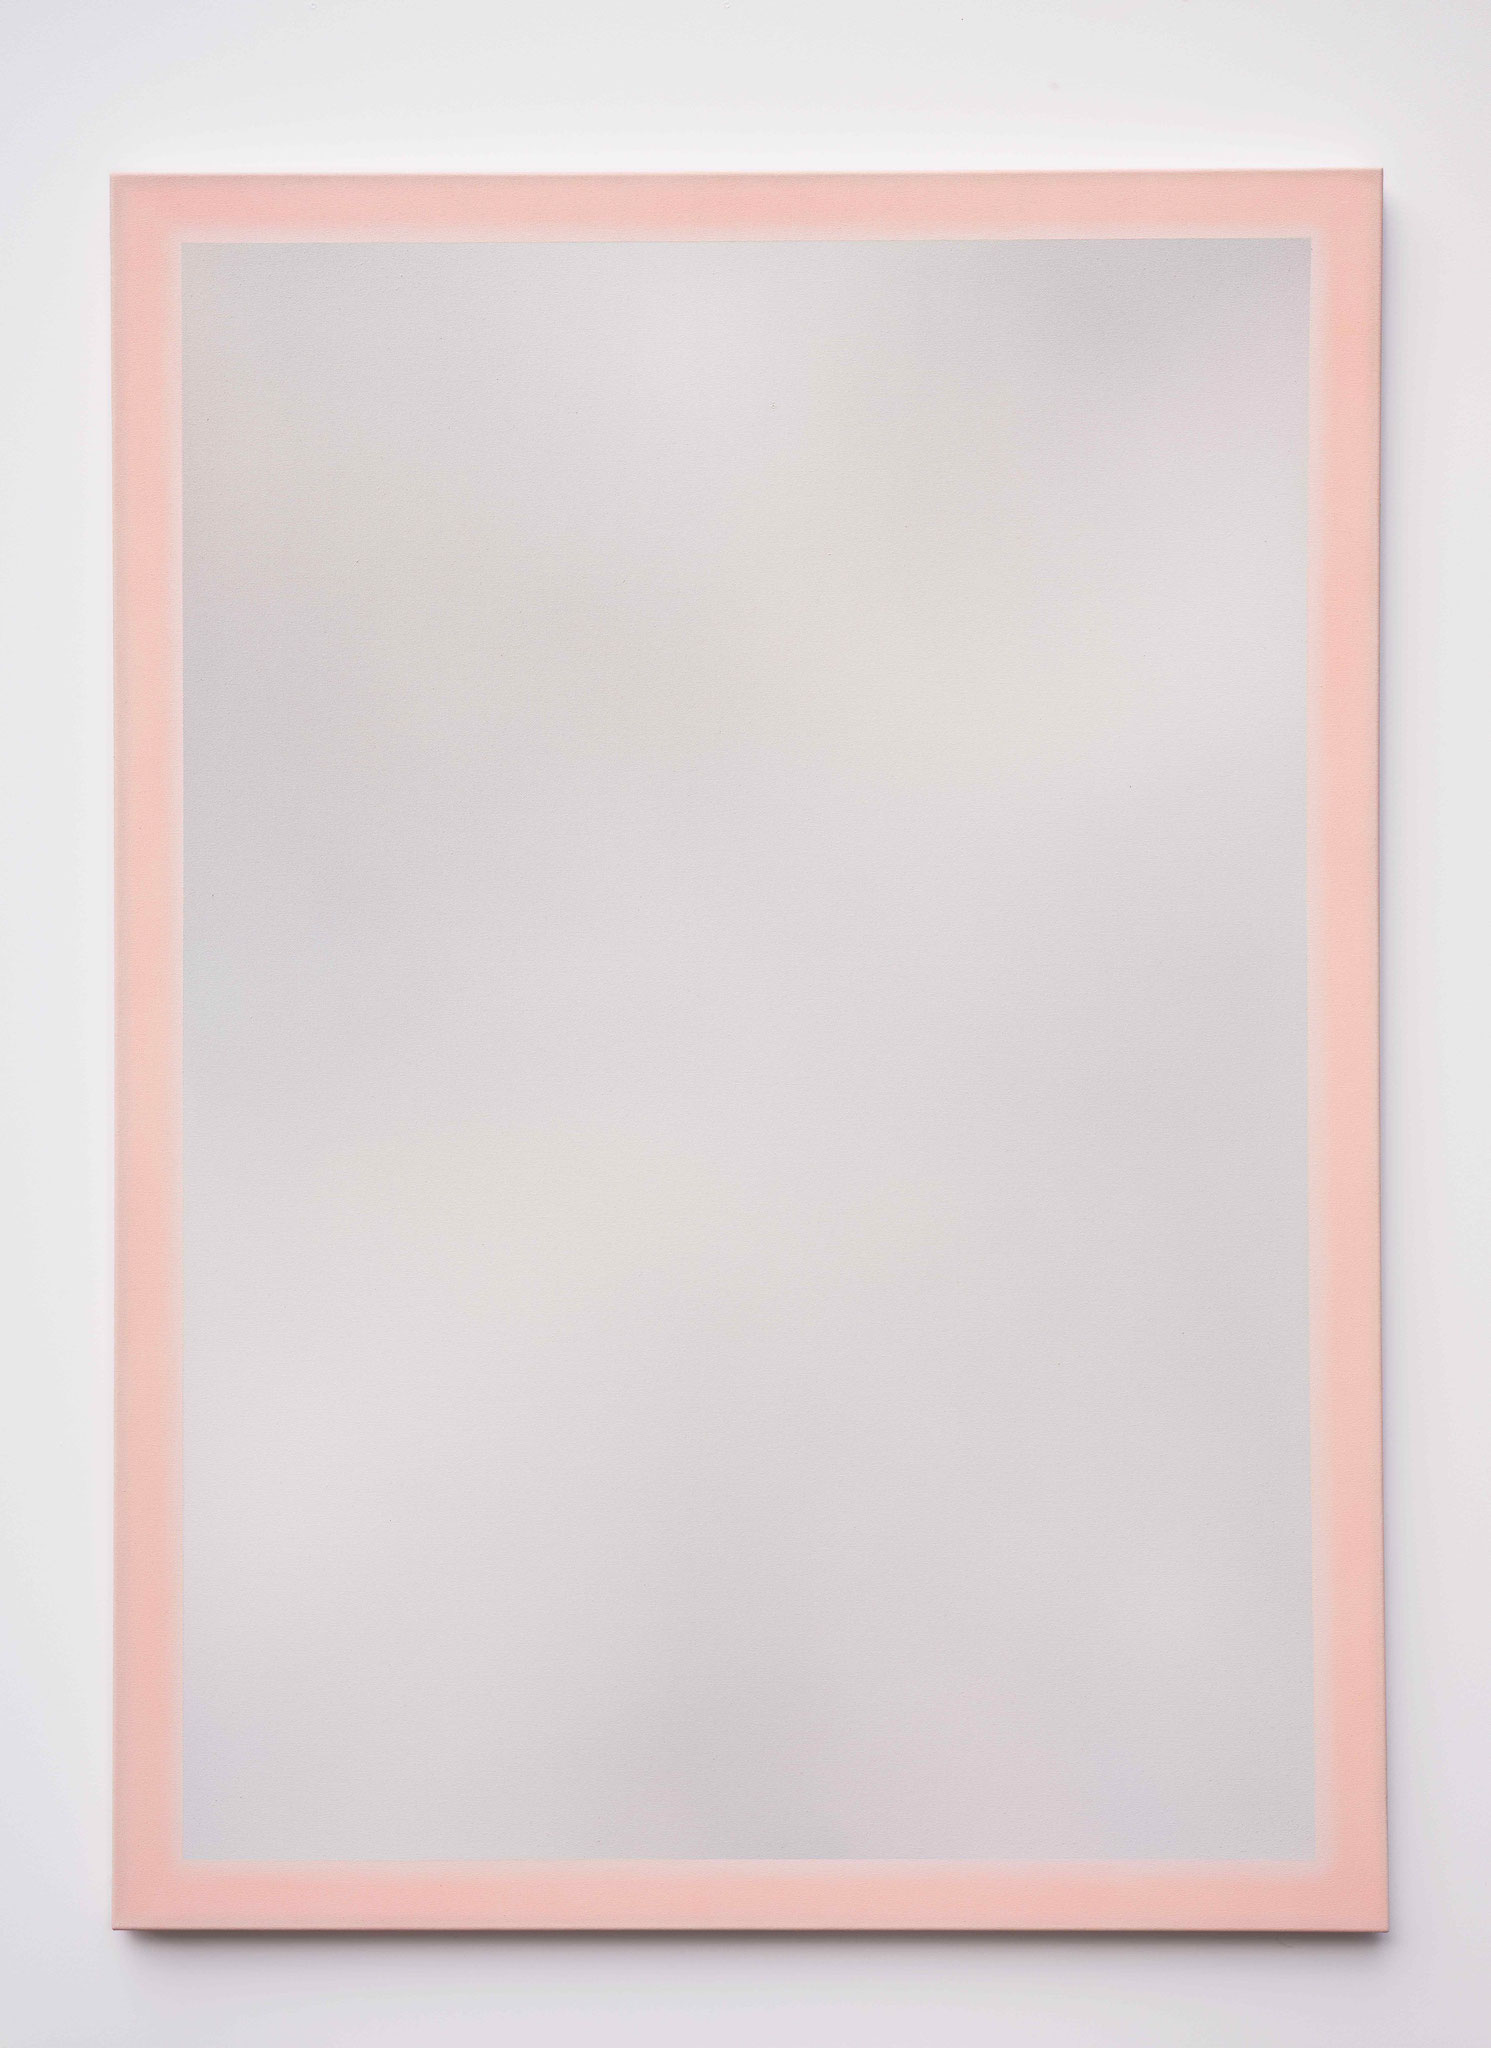 "Alina Birkner ""Untitled (Albedo)"" 2019, 180x130 cm, Acrylic on Canvas"